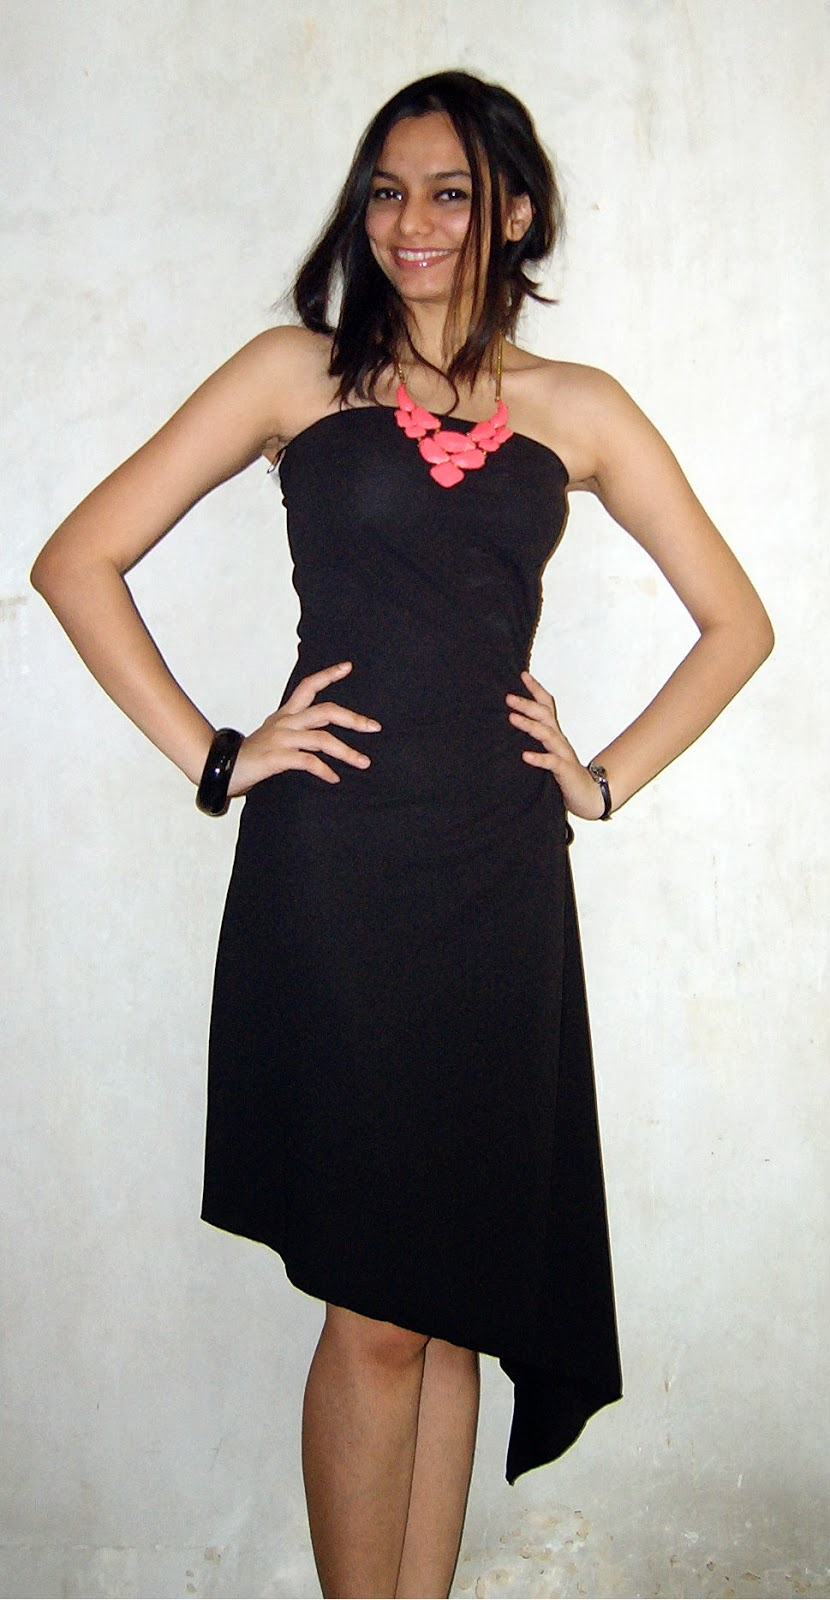 LBD, cutout dress, neon necklace, pink, shocking pink accessories, mumbai streetstyle, club look, asymmetric dress